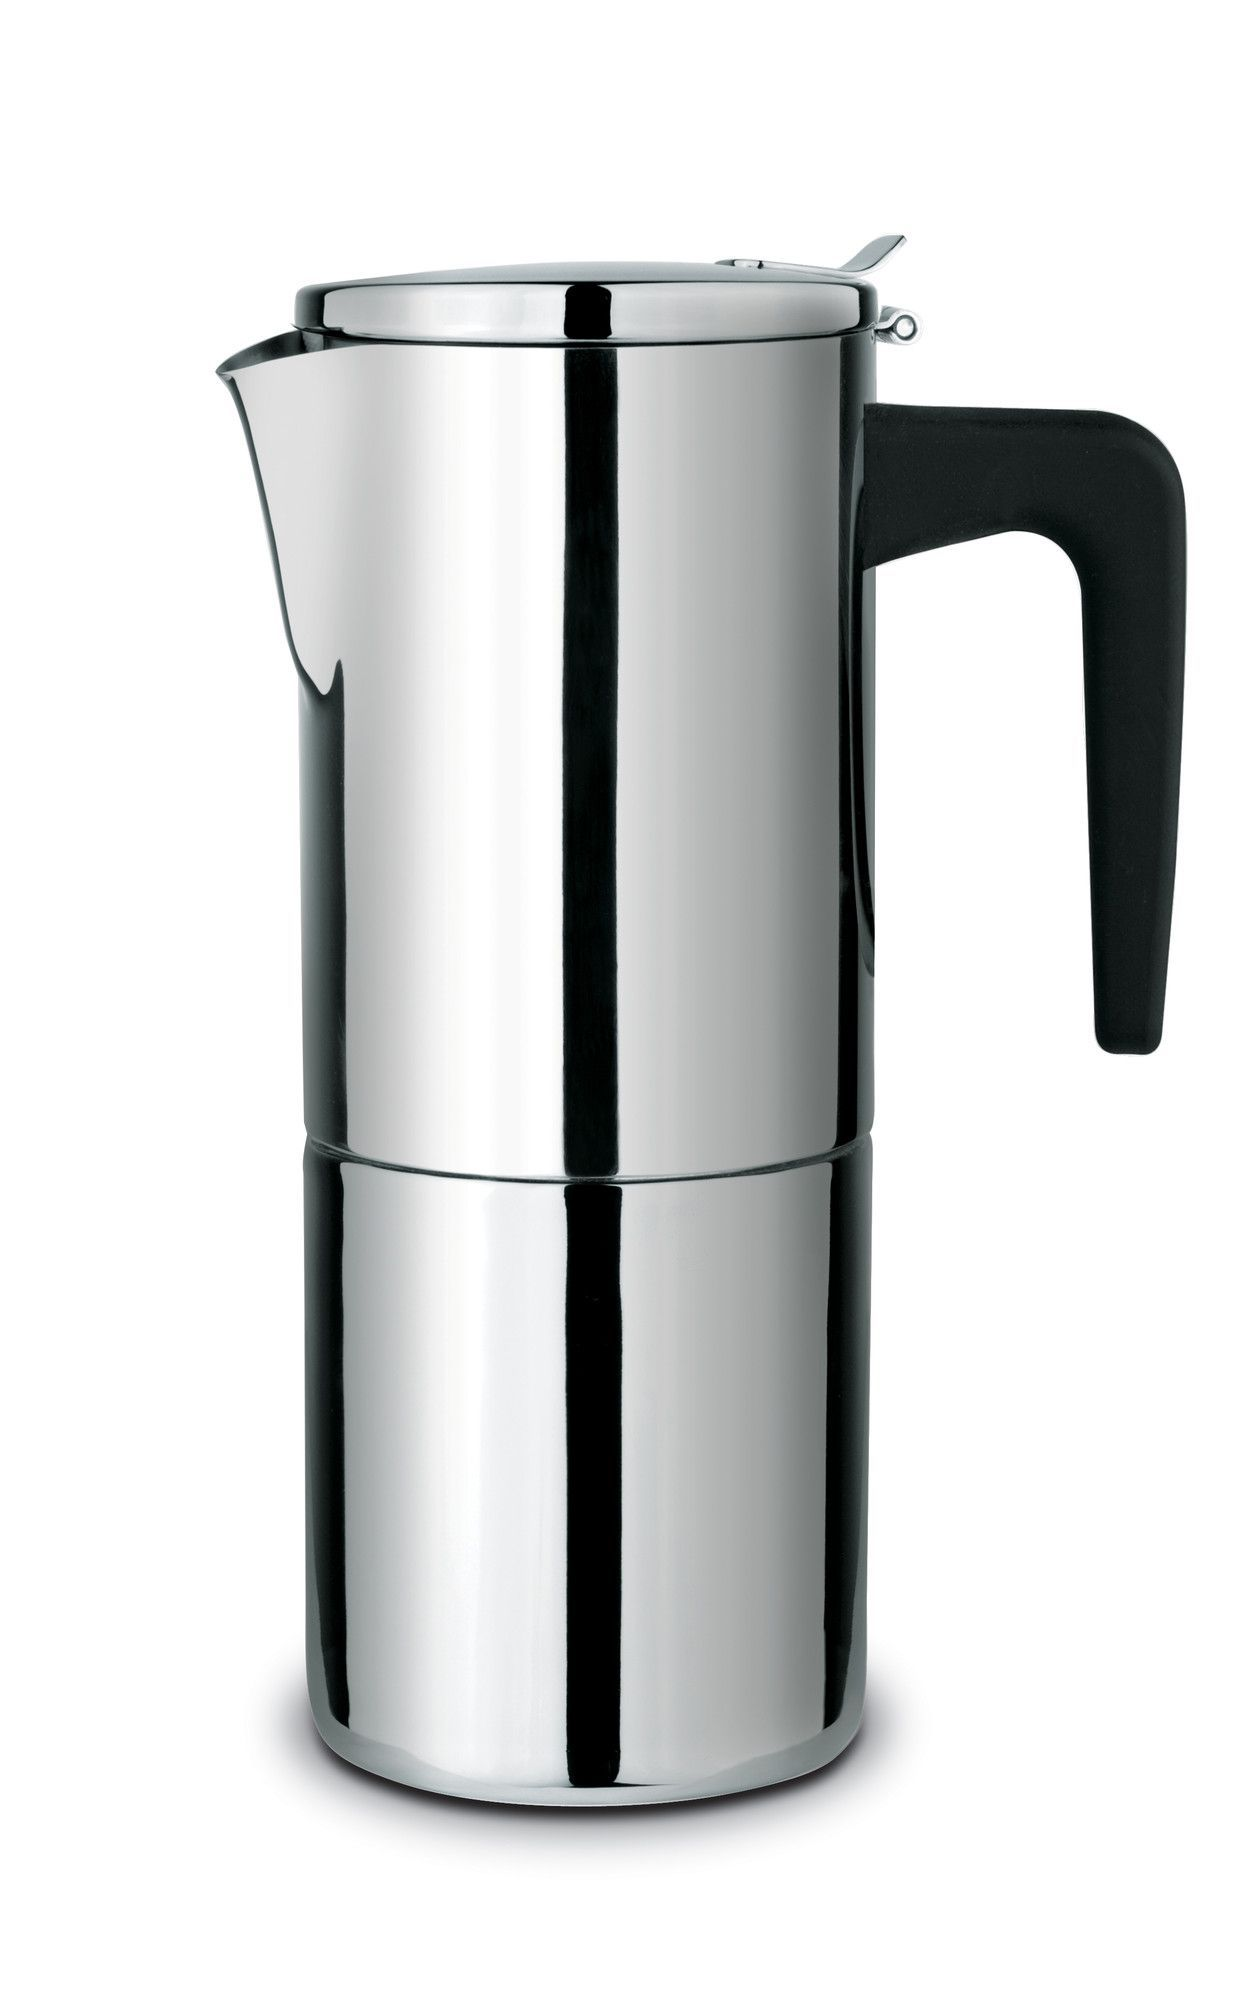 Alessi Espressokocher Features Espresso Maker Material 18 10 Stainless Steel